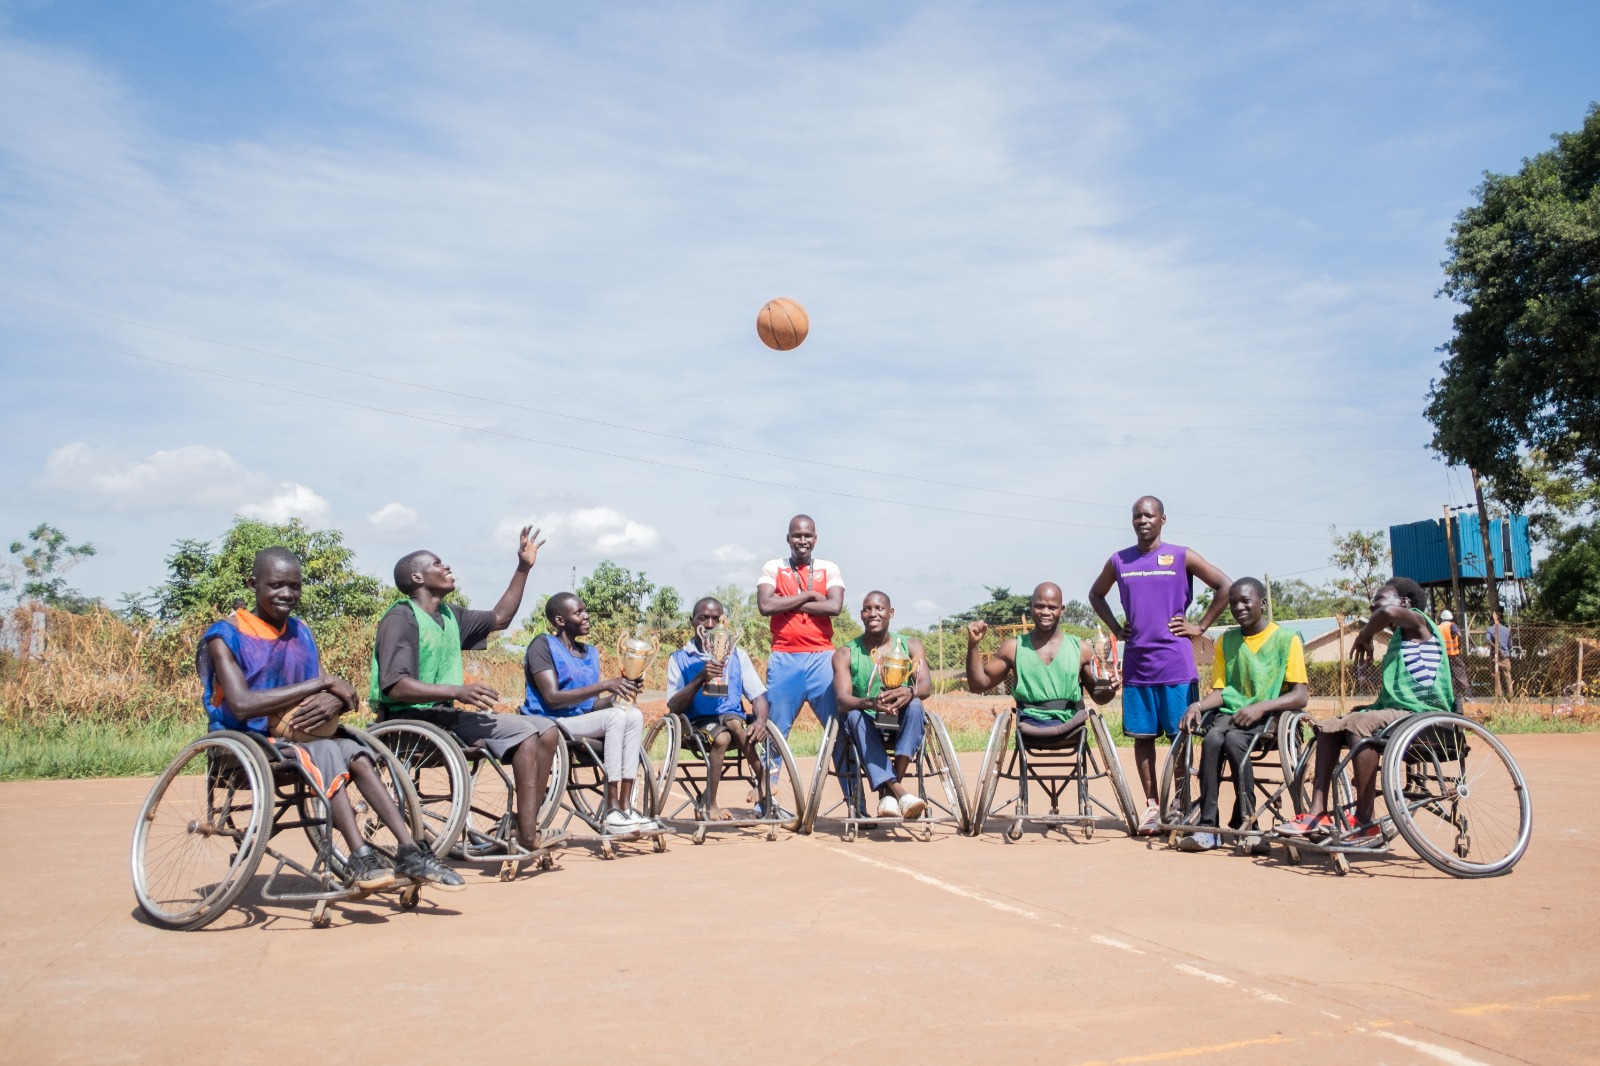 Ability Sports Africa